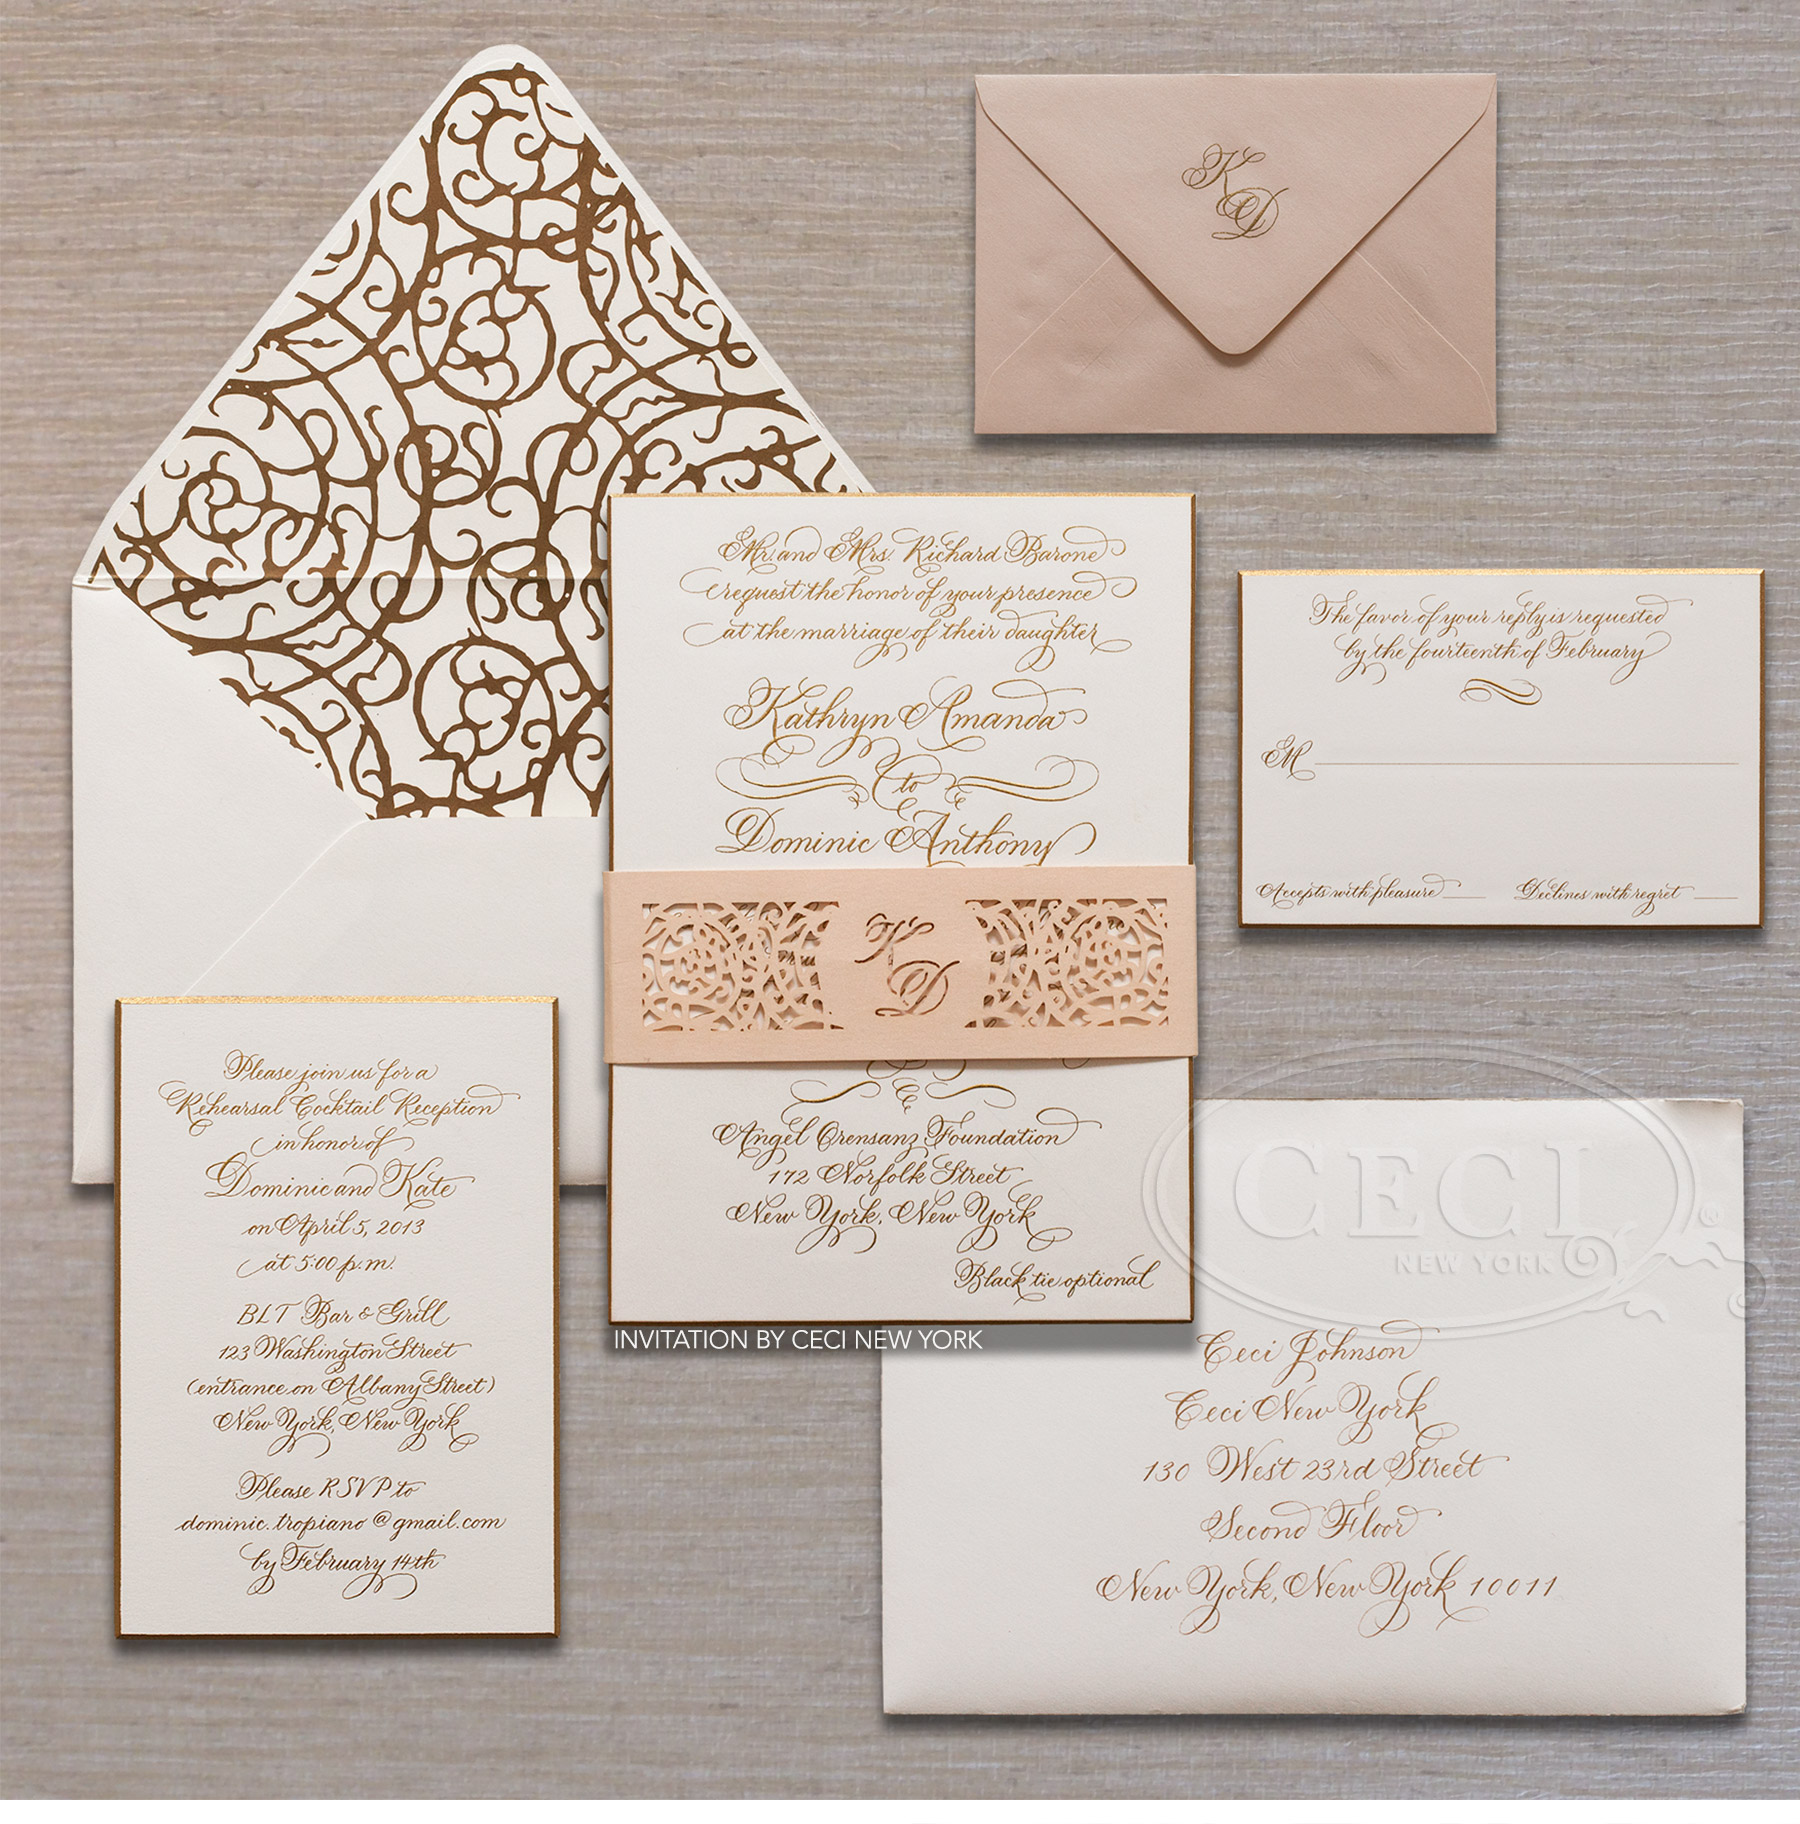 Cruise Wedding Invitation as good invitations design